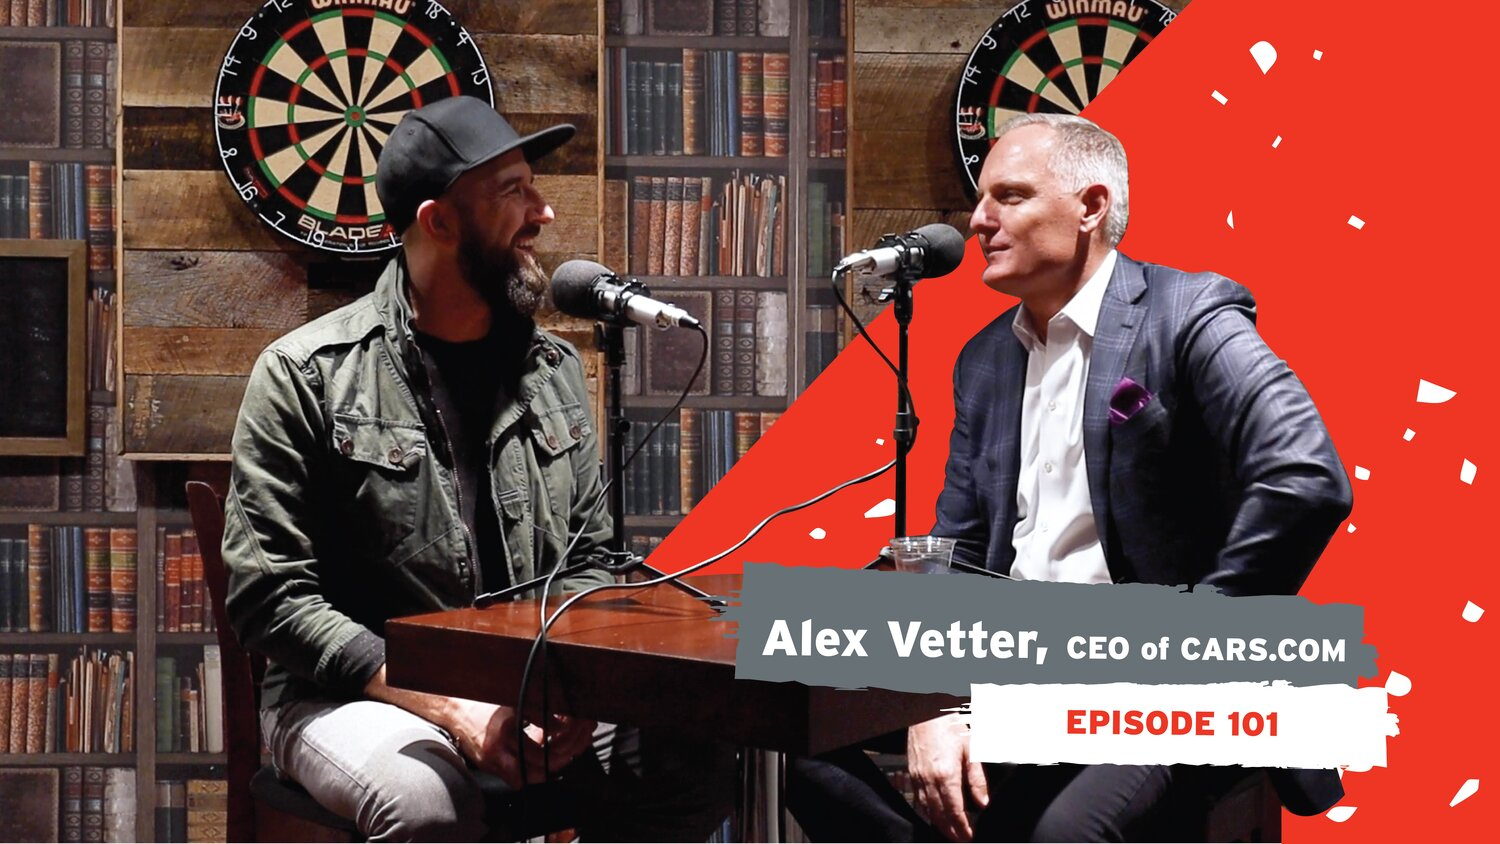 Talking Roots, Adaptability and Culture With Alex Vetter, CEO of CARS.com and CARS Inc.